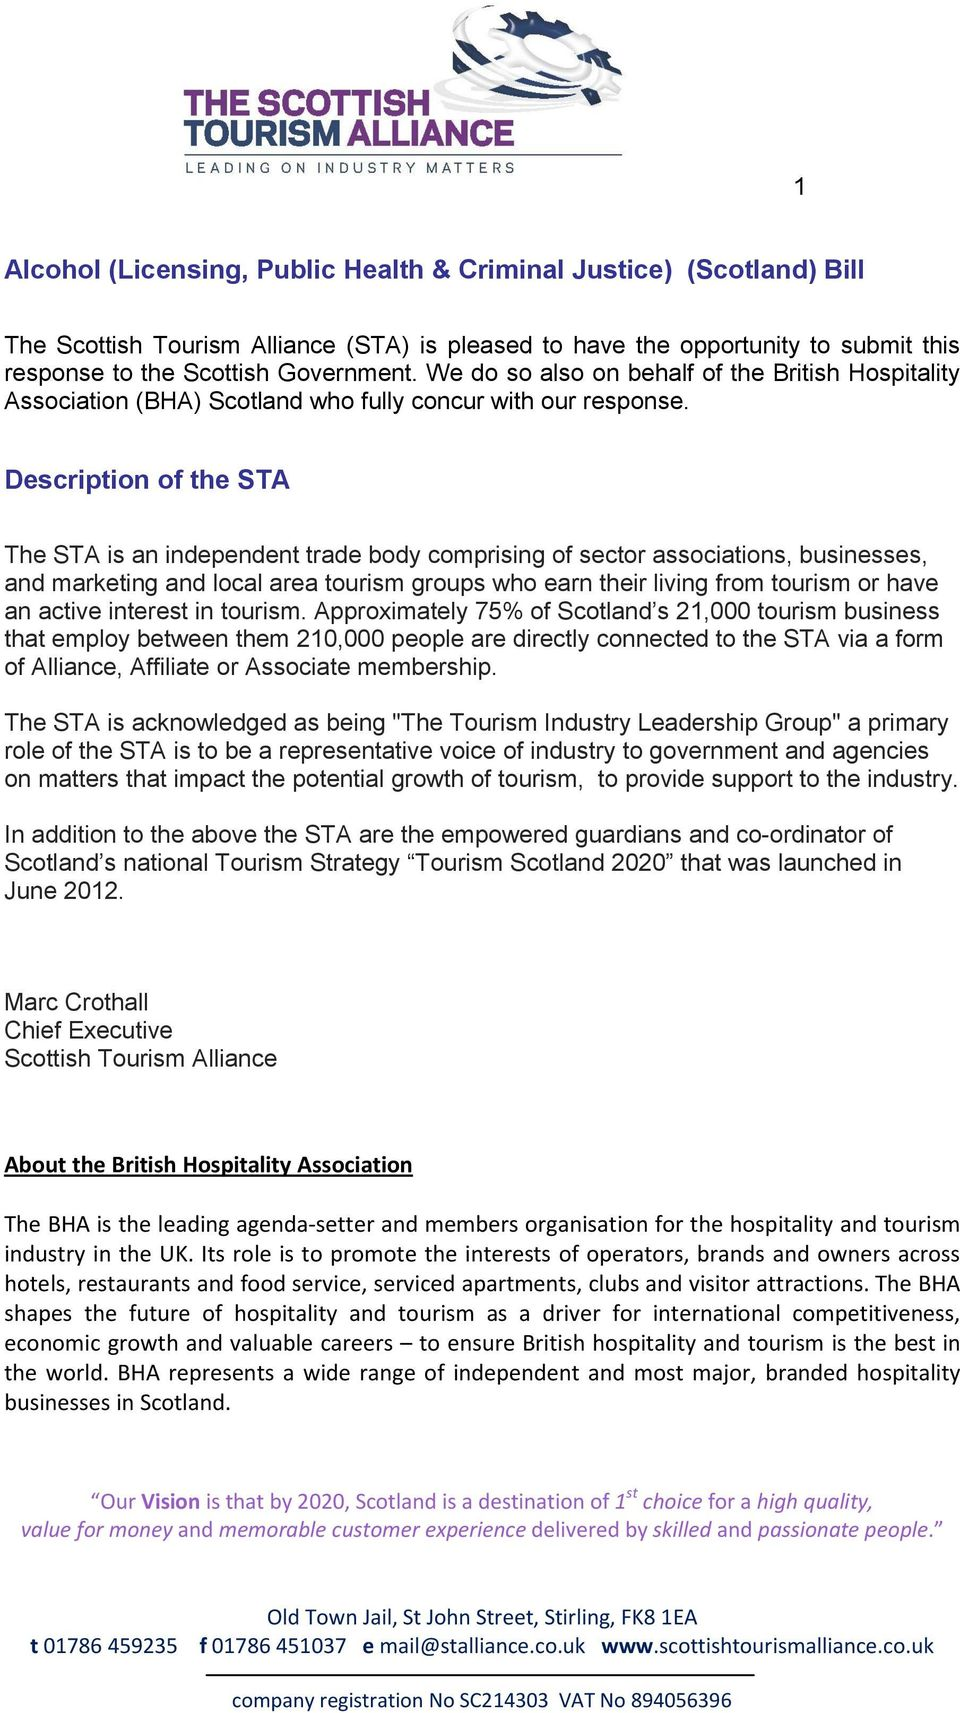 Description of the STA The STA is an independent trade body comprising of sector associations, businesses, and marketing and local area tourism groups who earn their living from tourism or have an